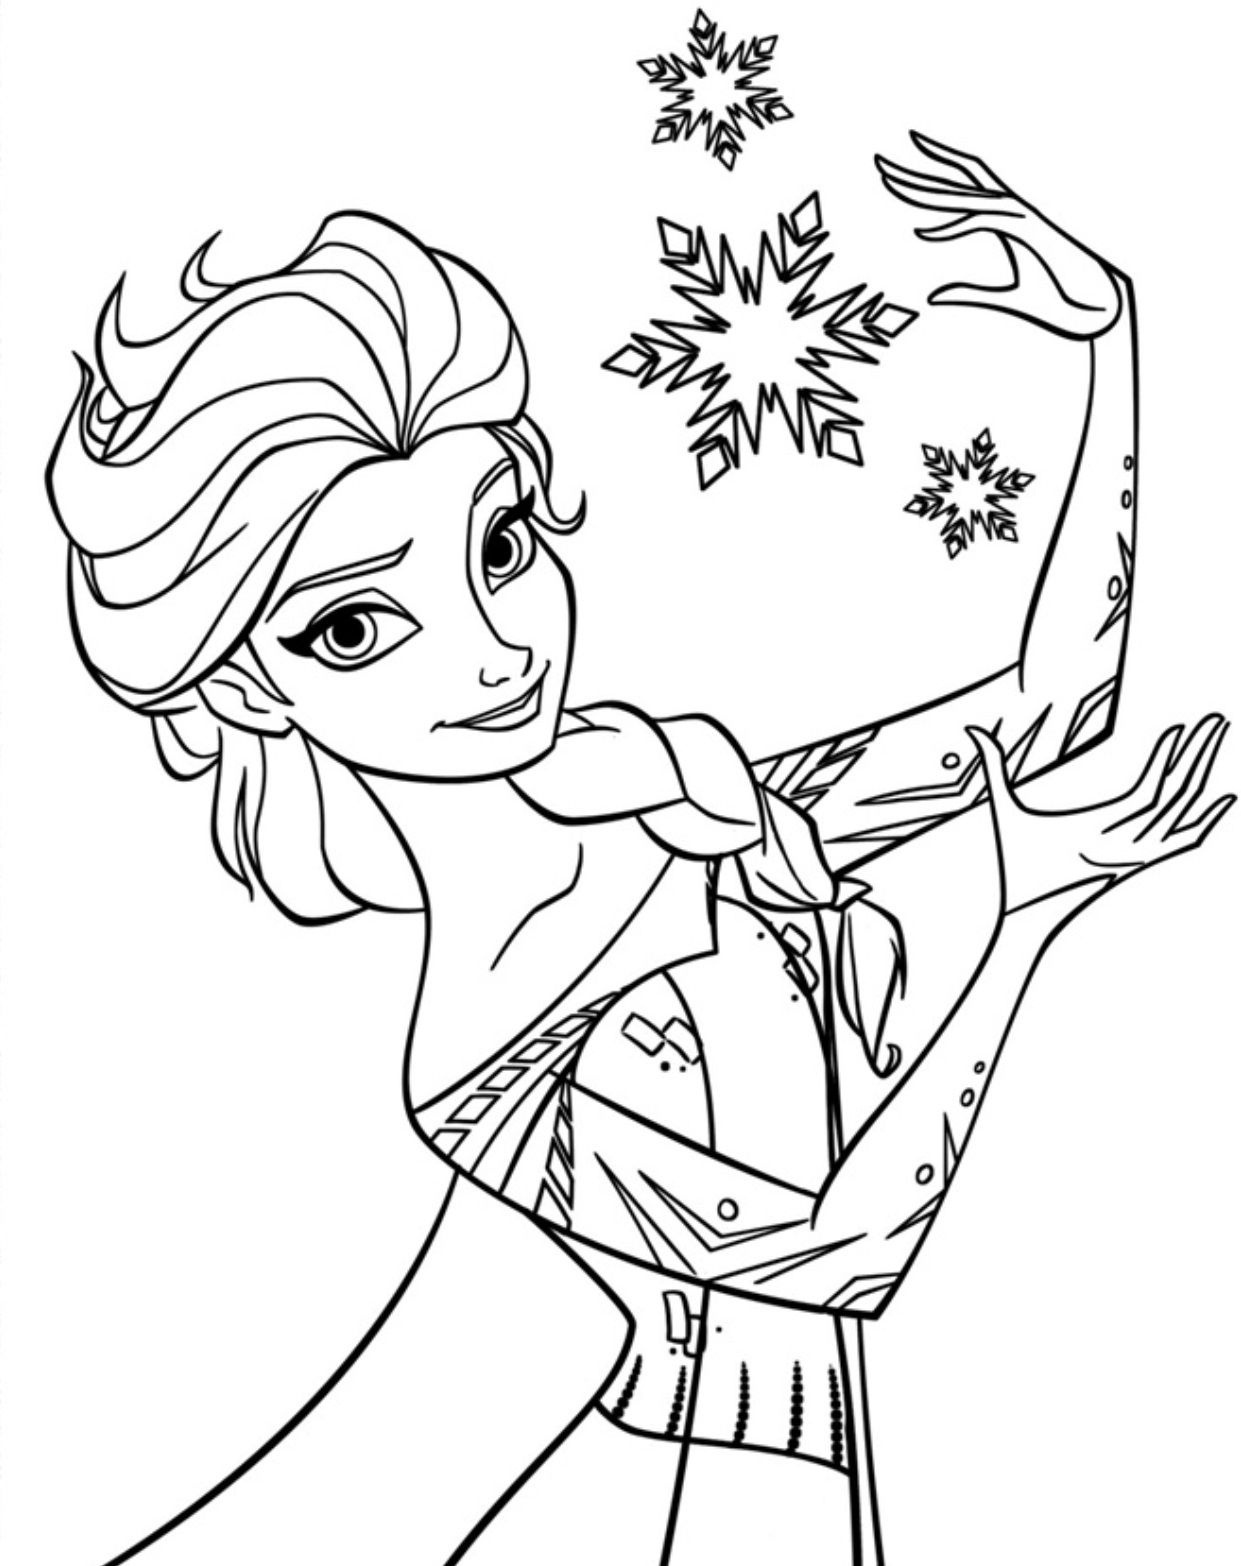 Free Printable Elsa Coloring Pages For Kids | Elsa | Princess - Free Printable Frozen Coloring Pages